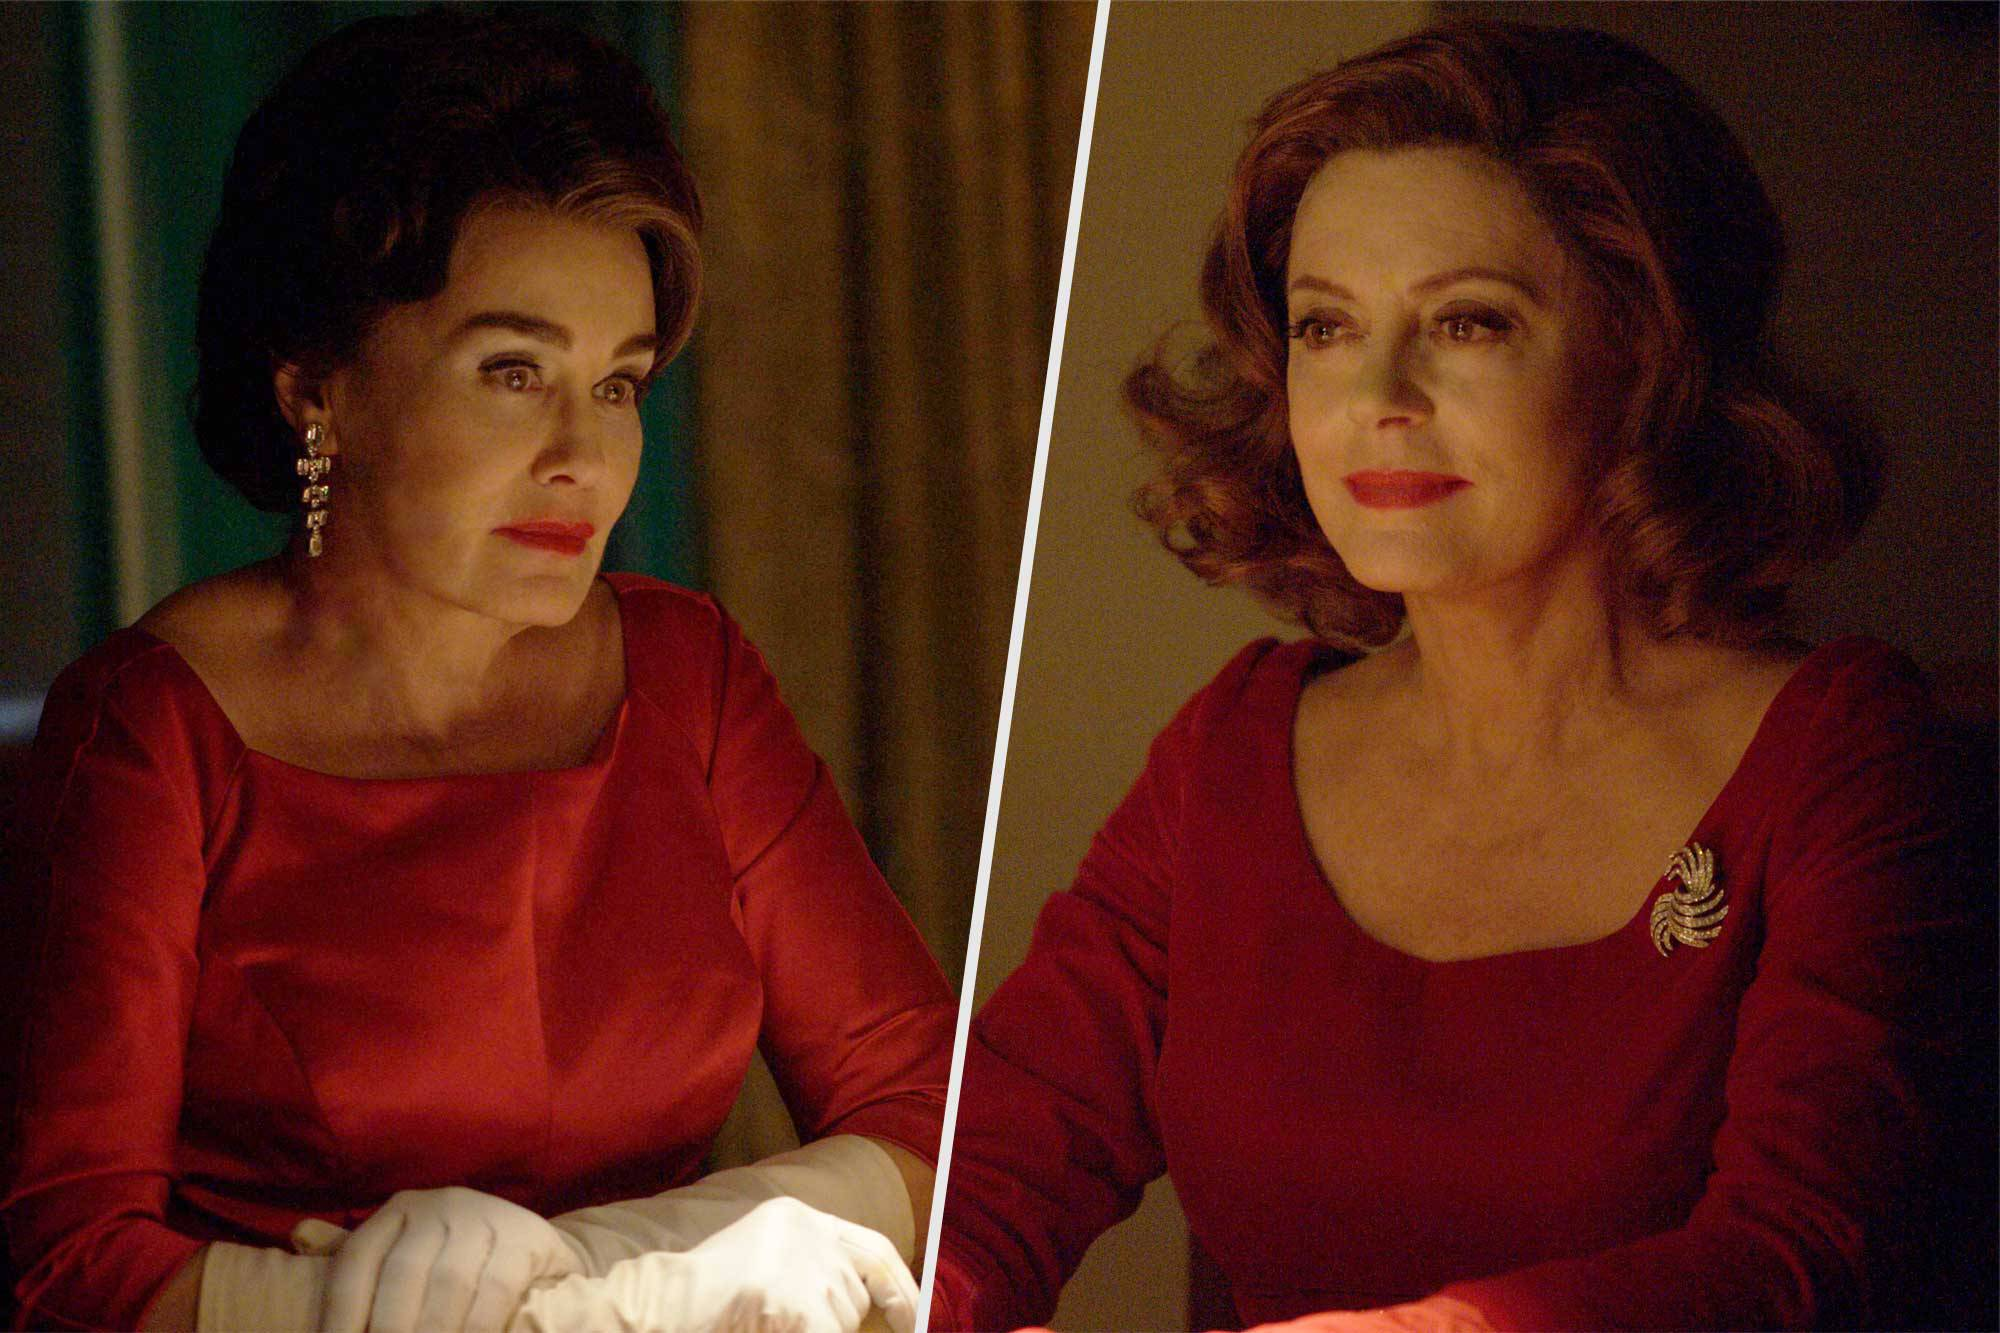 Inside The Screen Get Intimate With Bette and Joan Feud! 6